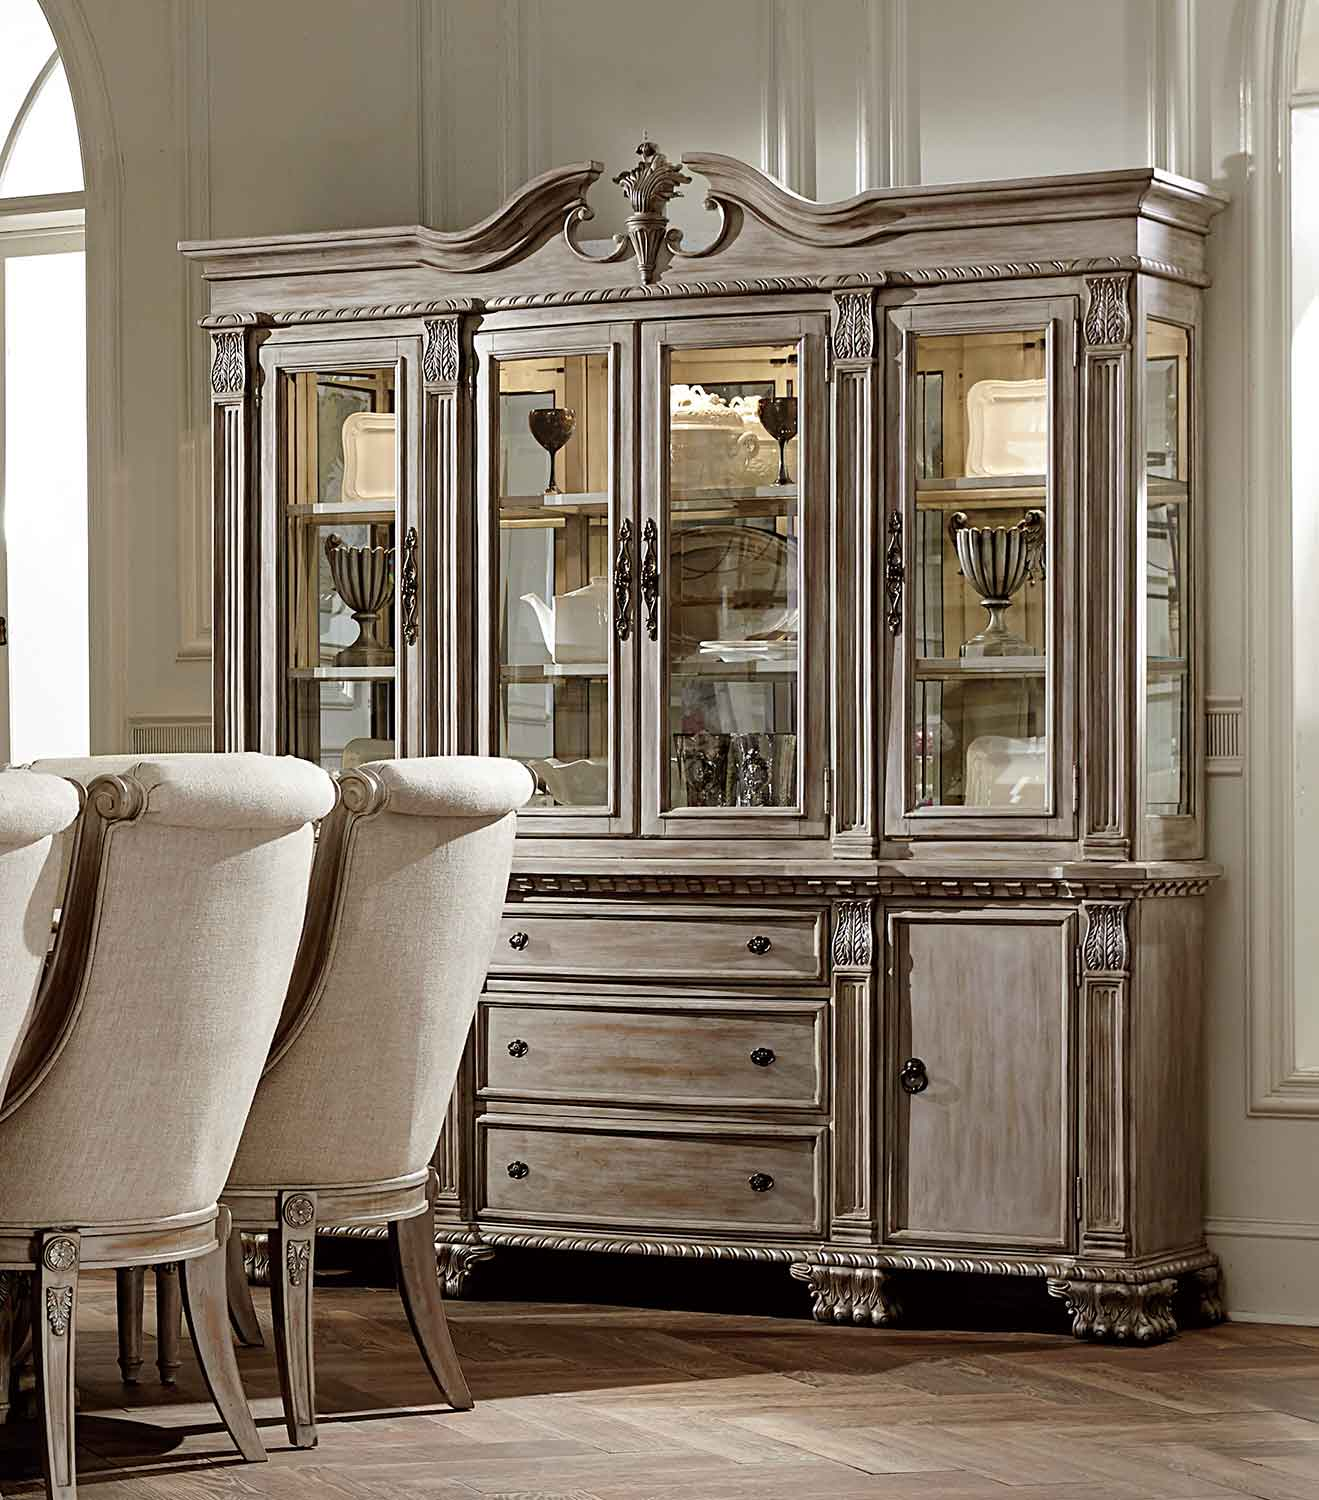 Homelegance Orleans II China Cabinet - White Wash